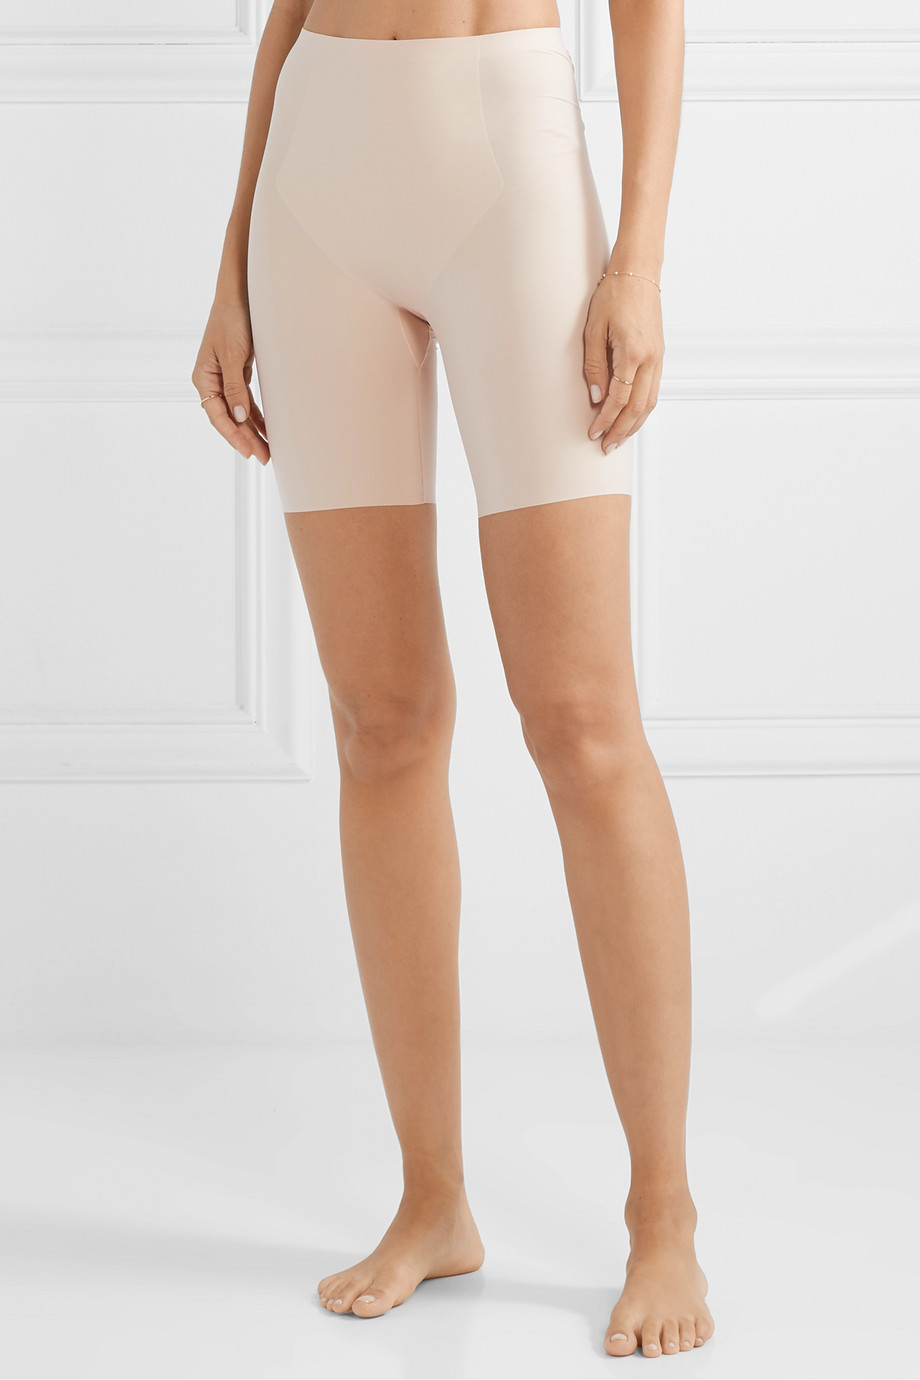 Spanx Thinstincts shorts